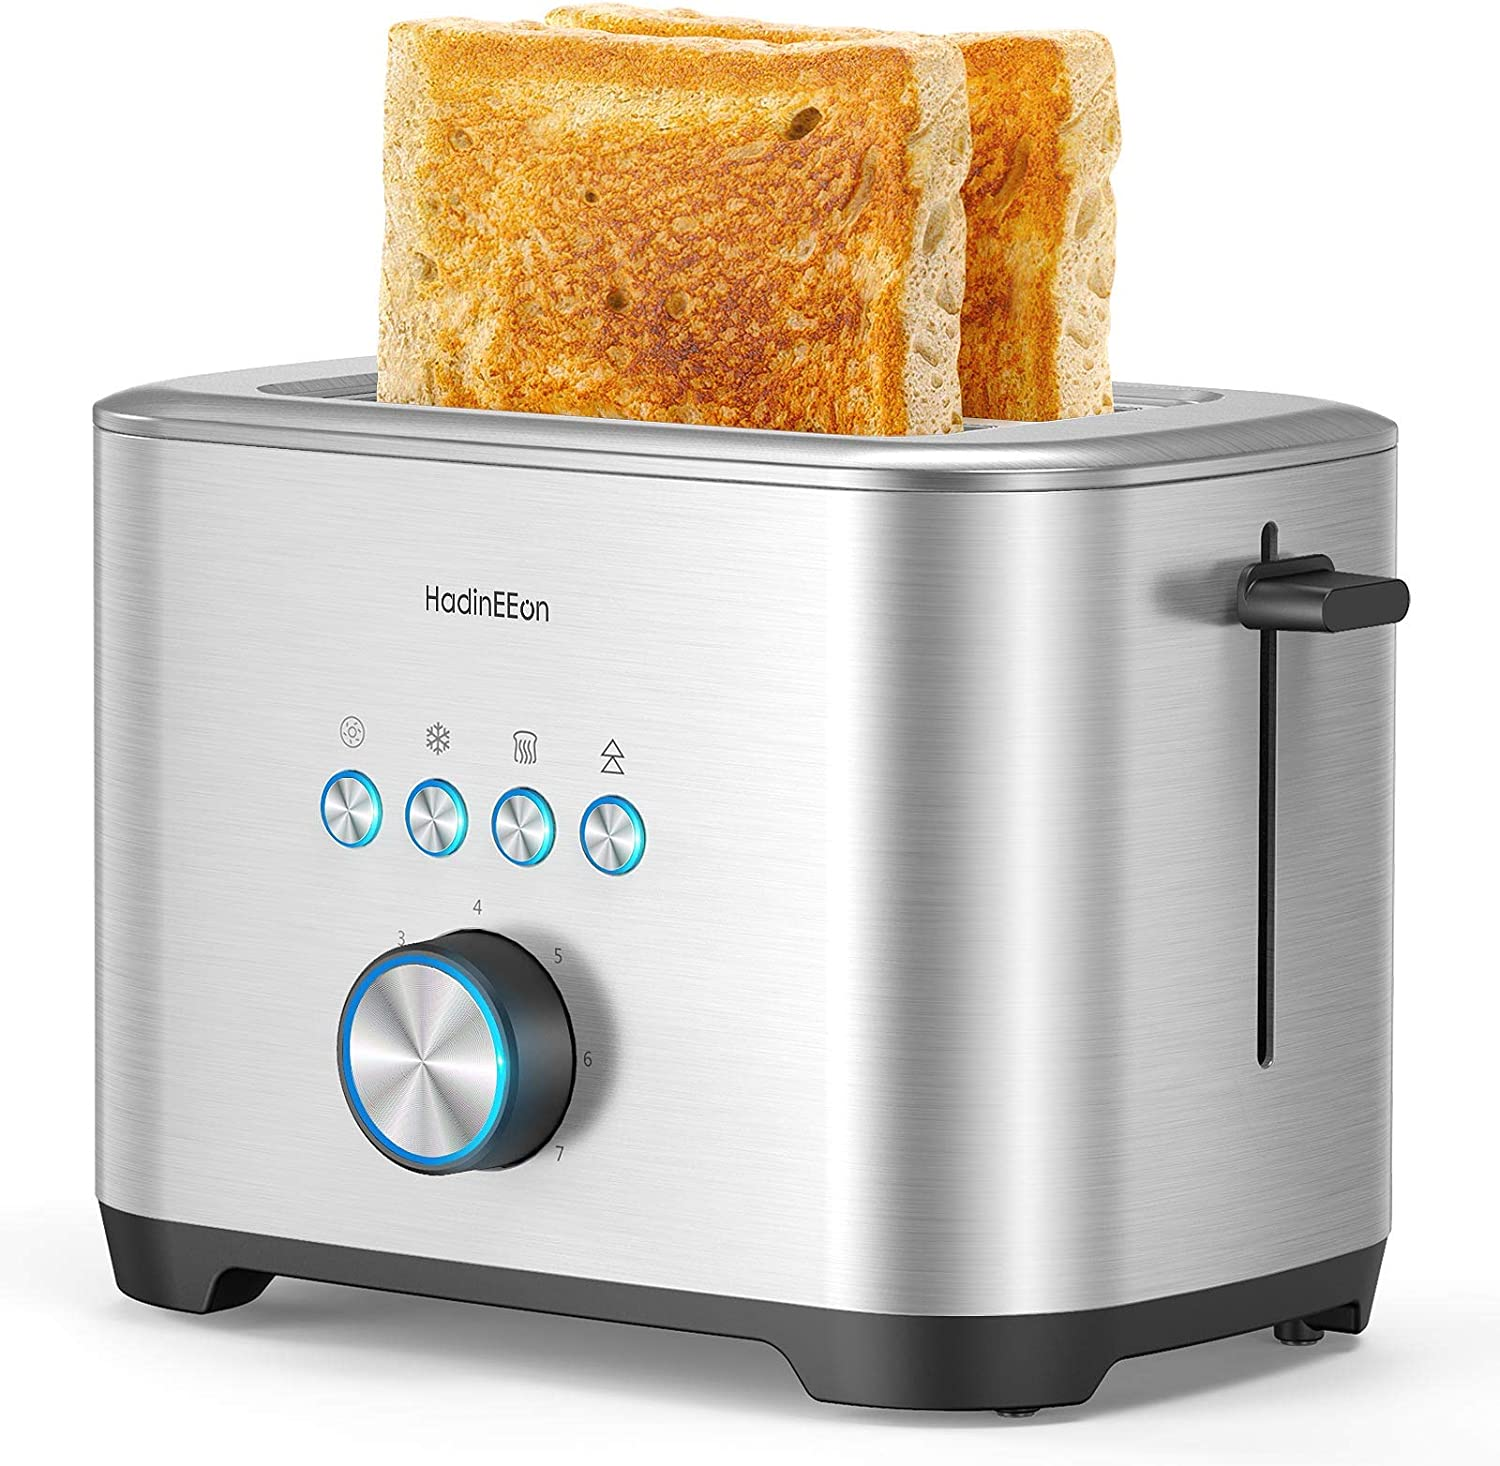 HadinEEon 2 Slice Toaster, Stainless Steel Toaster 1.5 Inches Extra Wide Slot, Cancel/Bagel/Defrost/Reheat Function, 7 Browning Levels Built-In Warming Rack for Muffin and Croissant, 120V, Silver